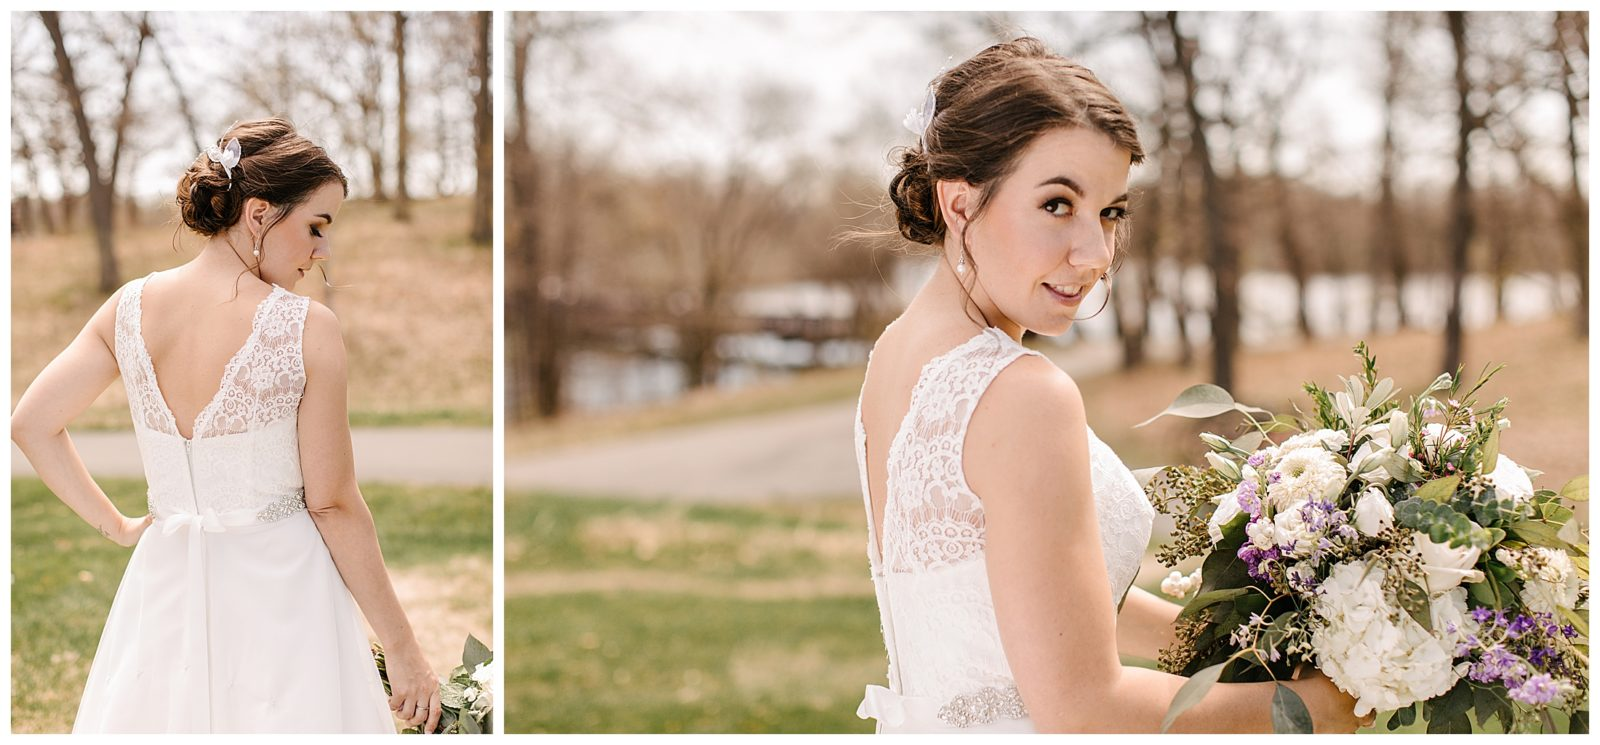 Silverwood Park wedding | May 4th wedding | Tigerlily Photography | Sixpence Events and Planning day of coordinating | bridal portraits